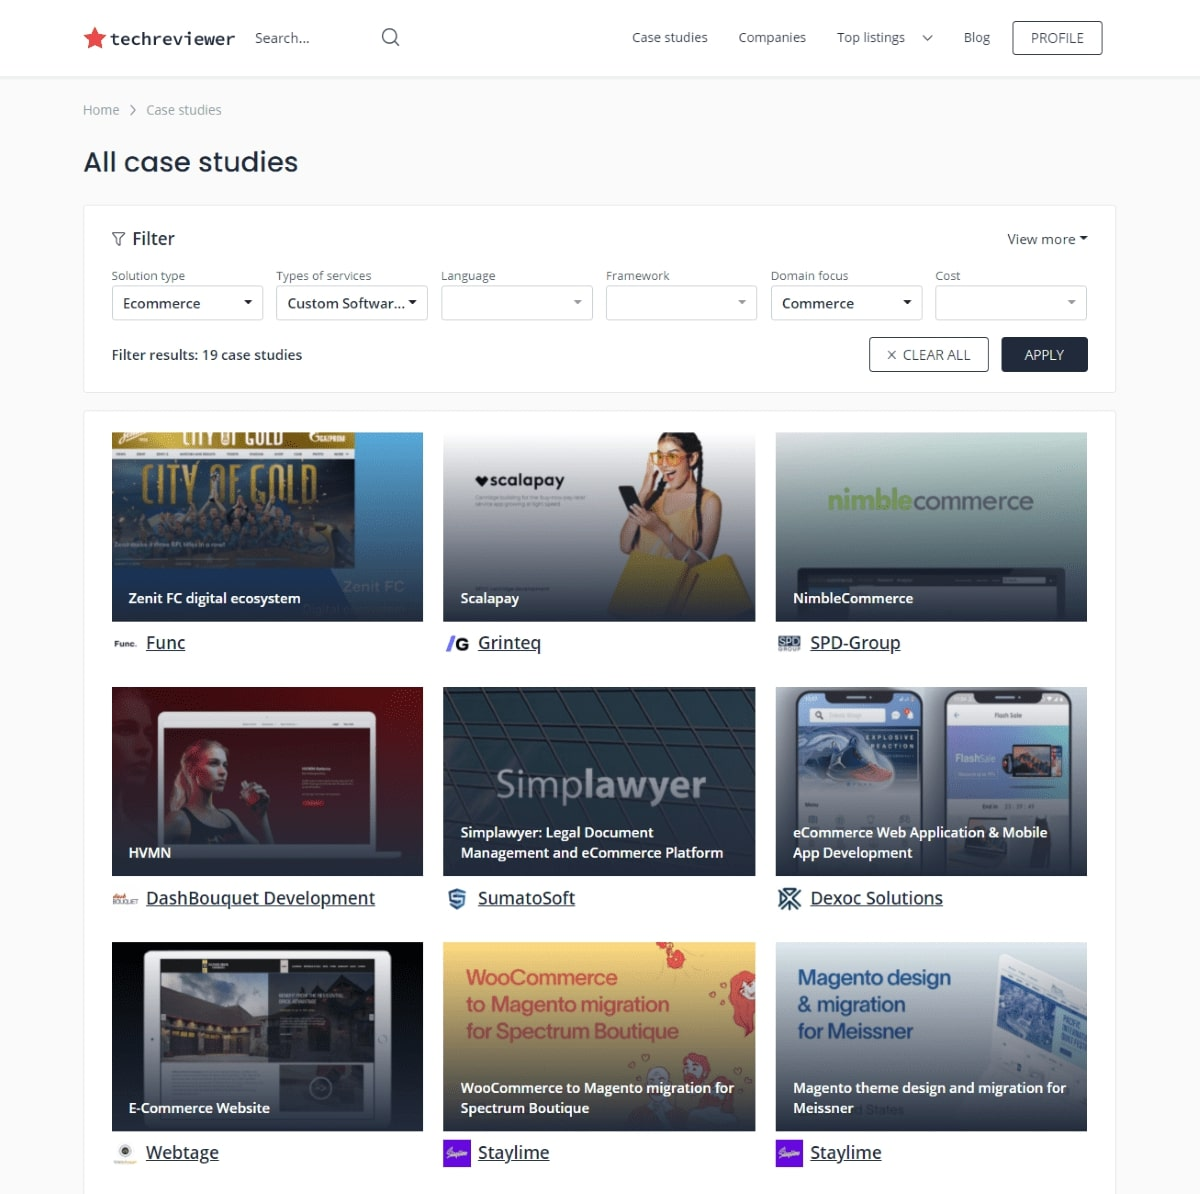 Case studies gallery on TechReviewer